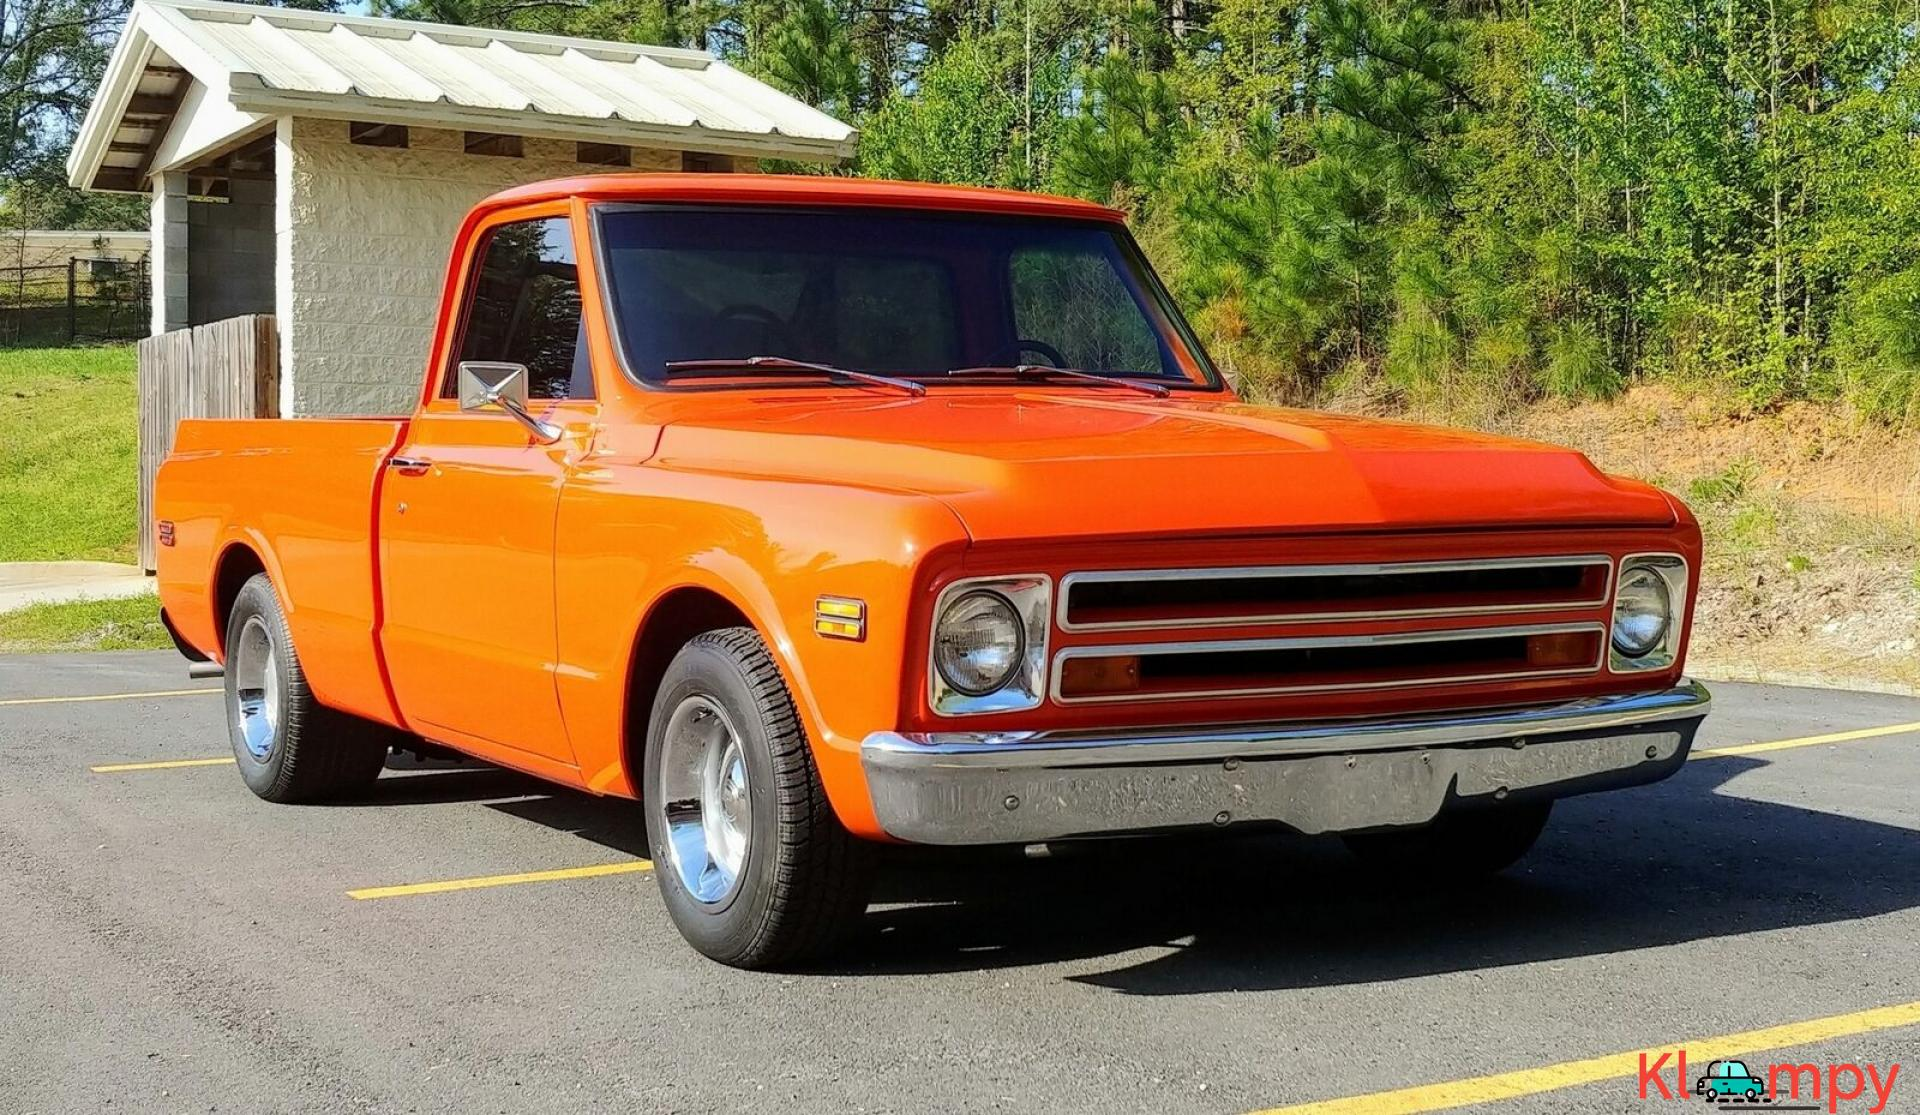 1968 Chevrolet Other Pickups C10 - 5/20